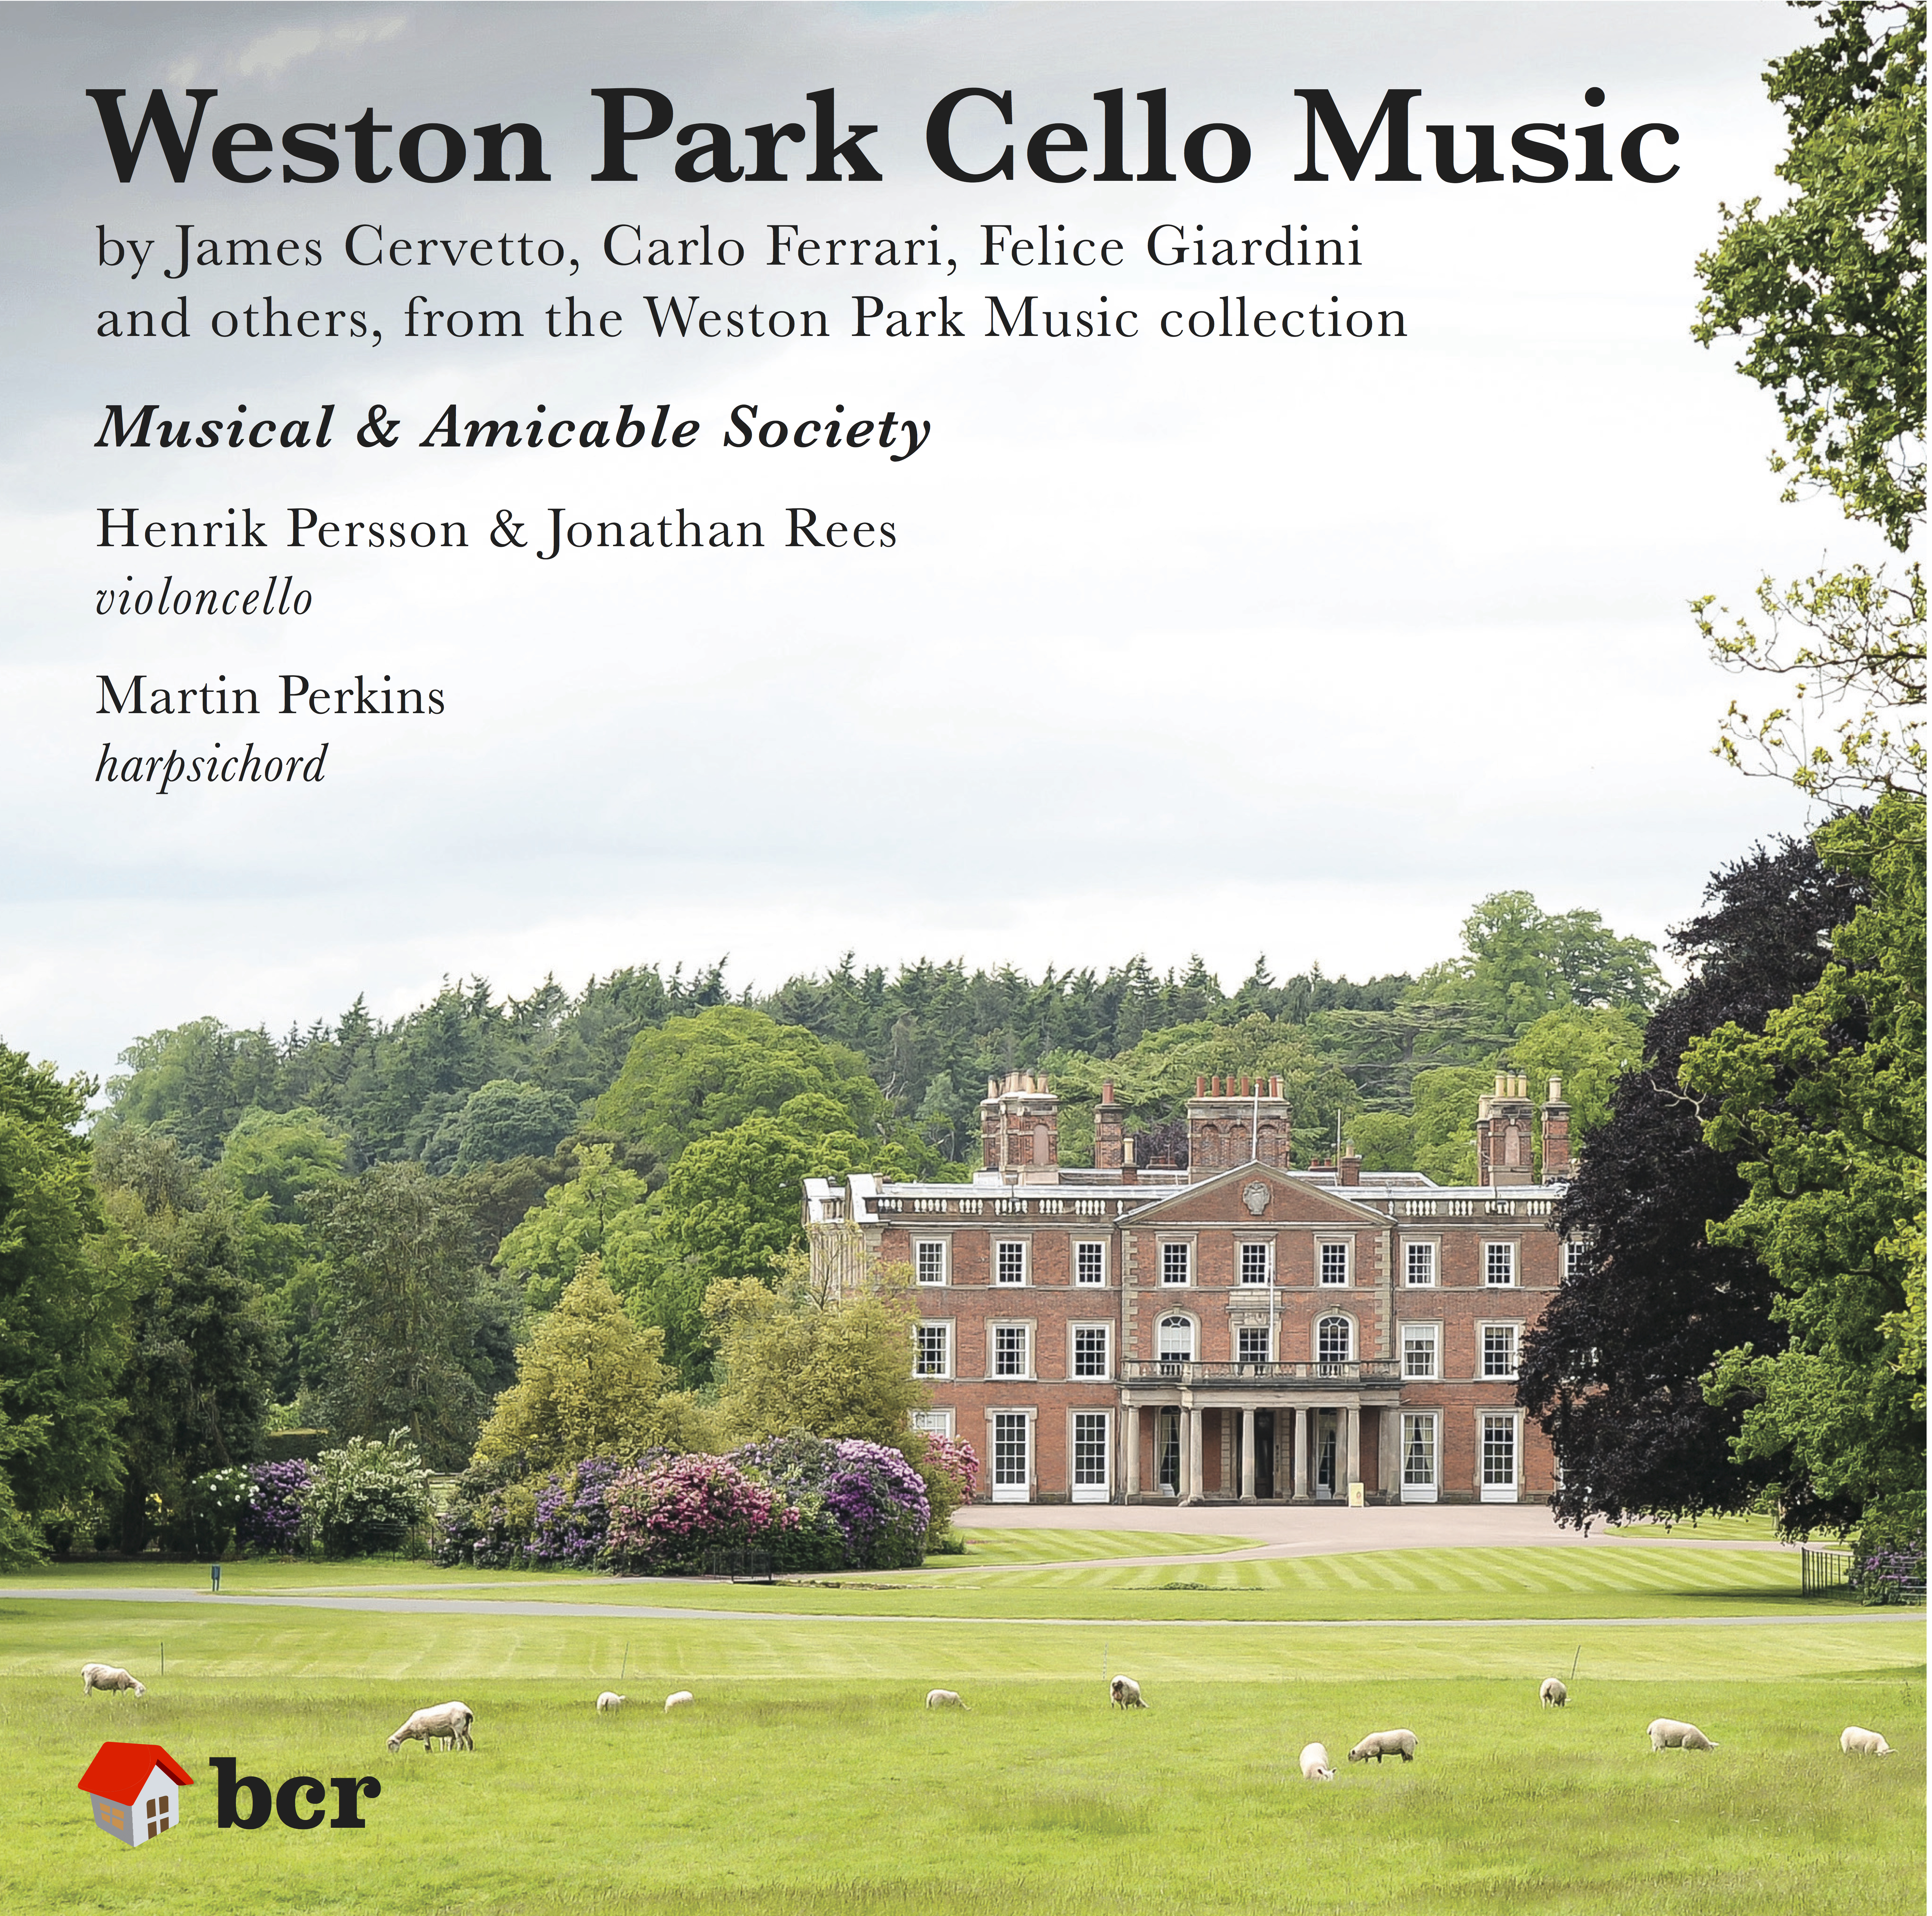 'Weston Park Cello Music' CD, 2018